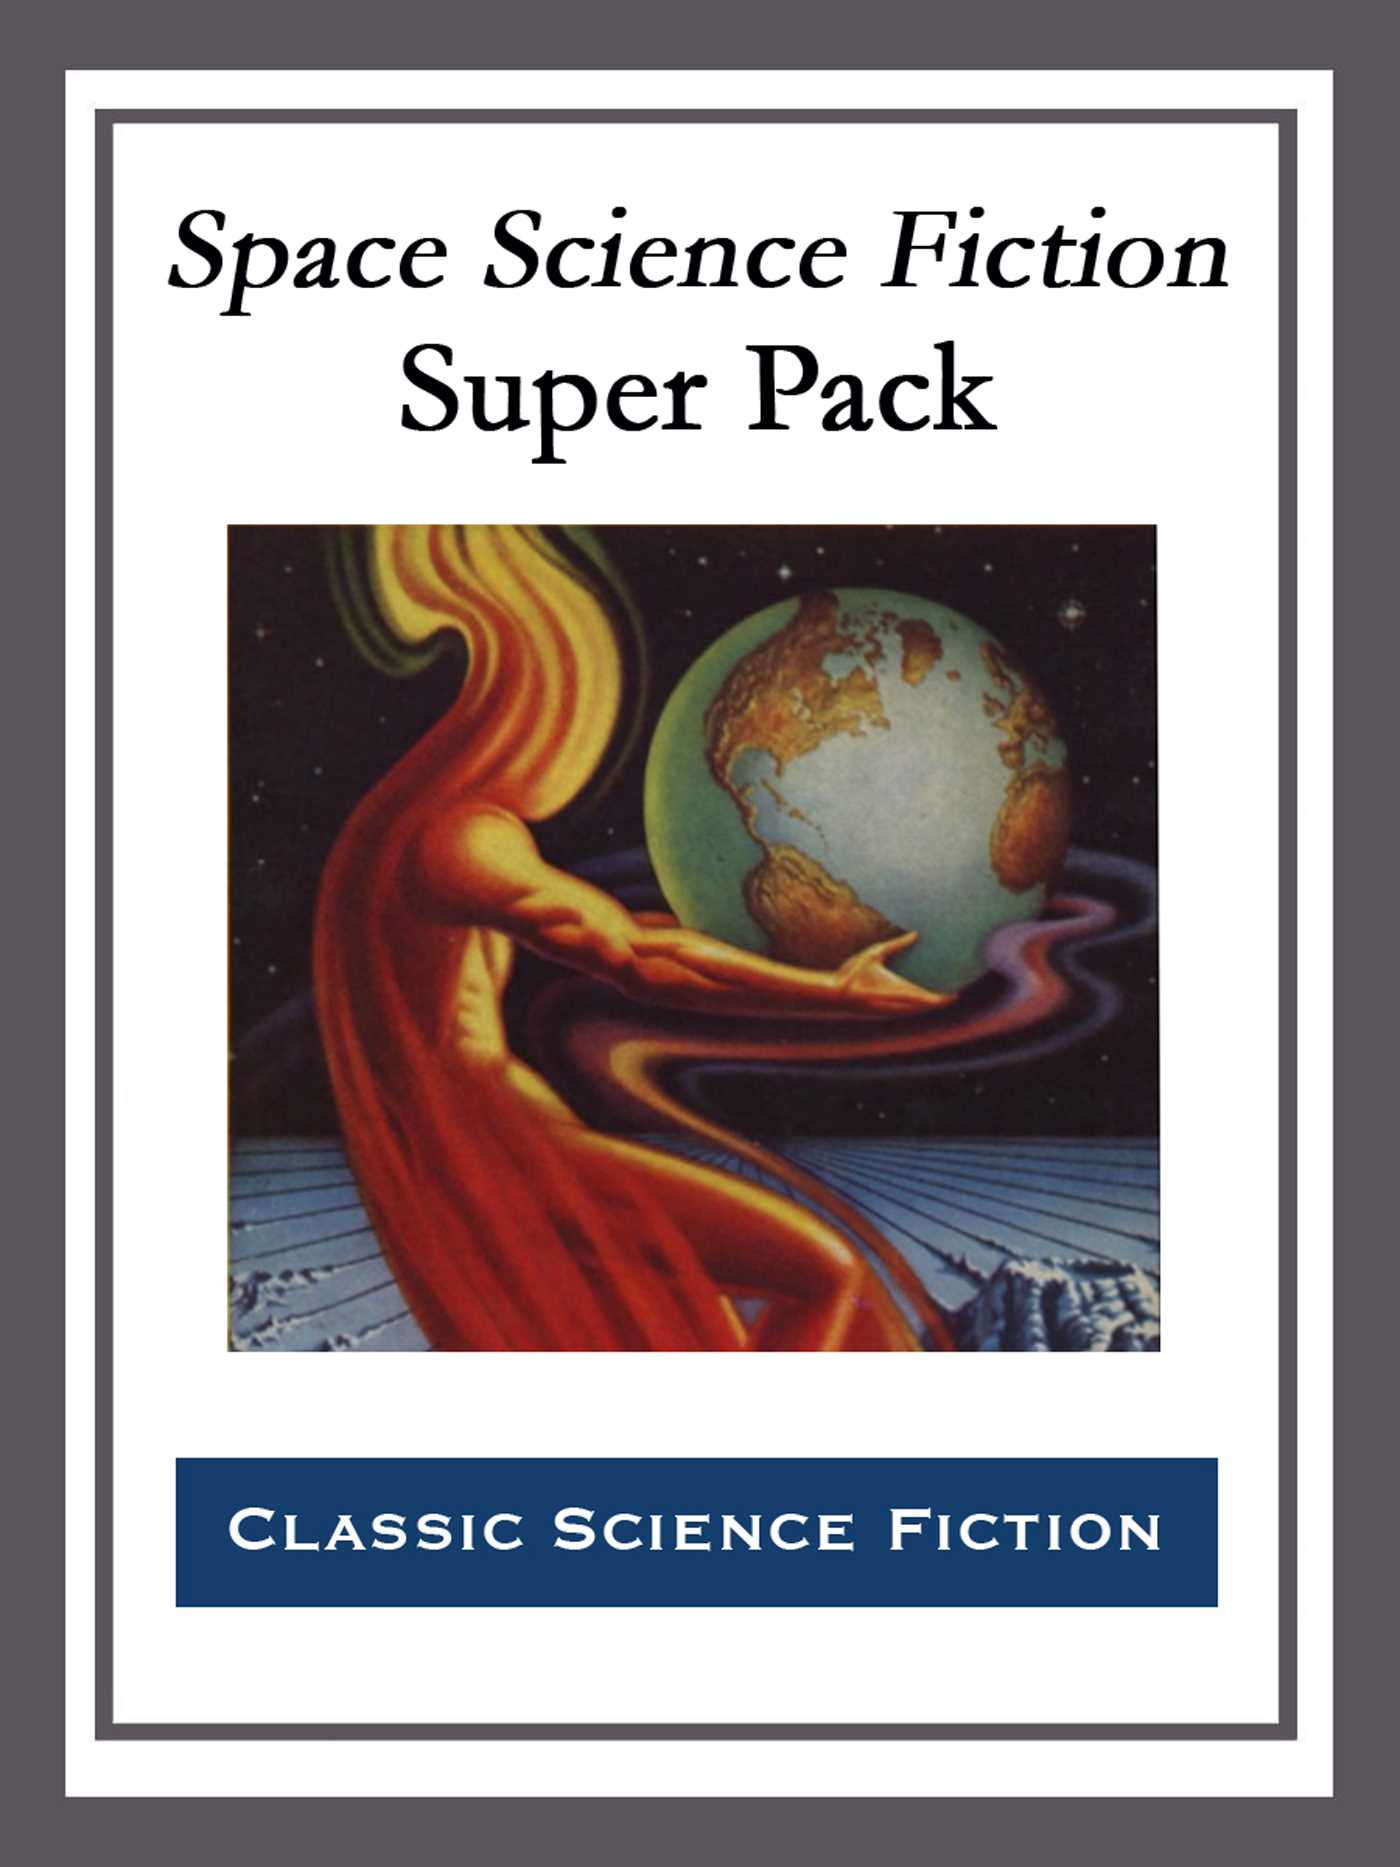 Space science fiction super pack 9781682999226 hr